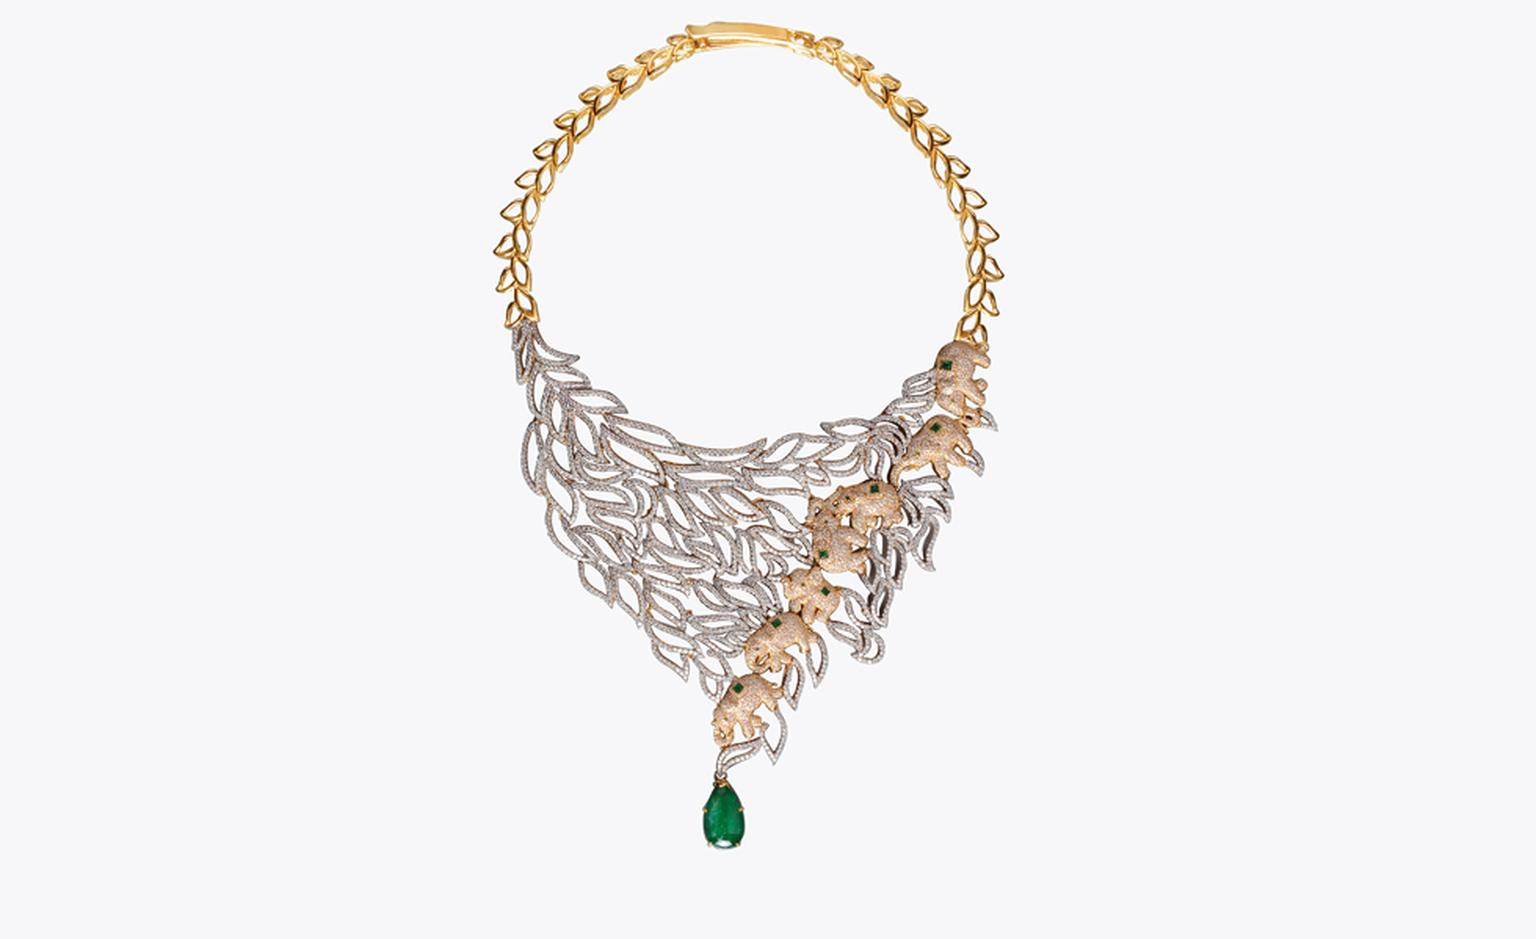 MEENA JEWELLERS ZAMBIAN EMERALD NECKLACE